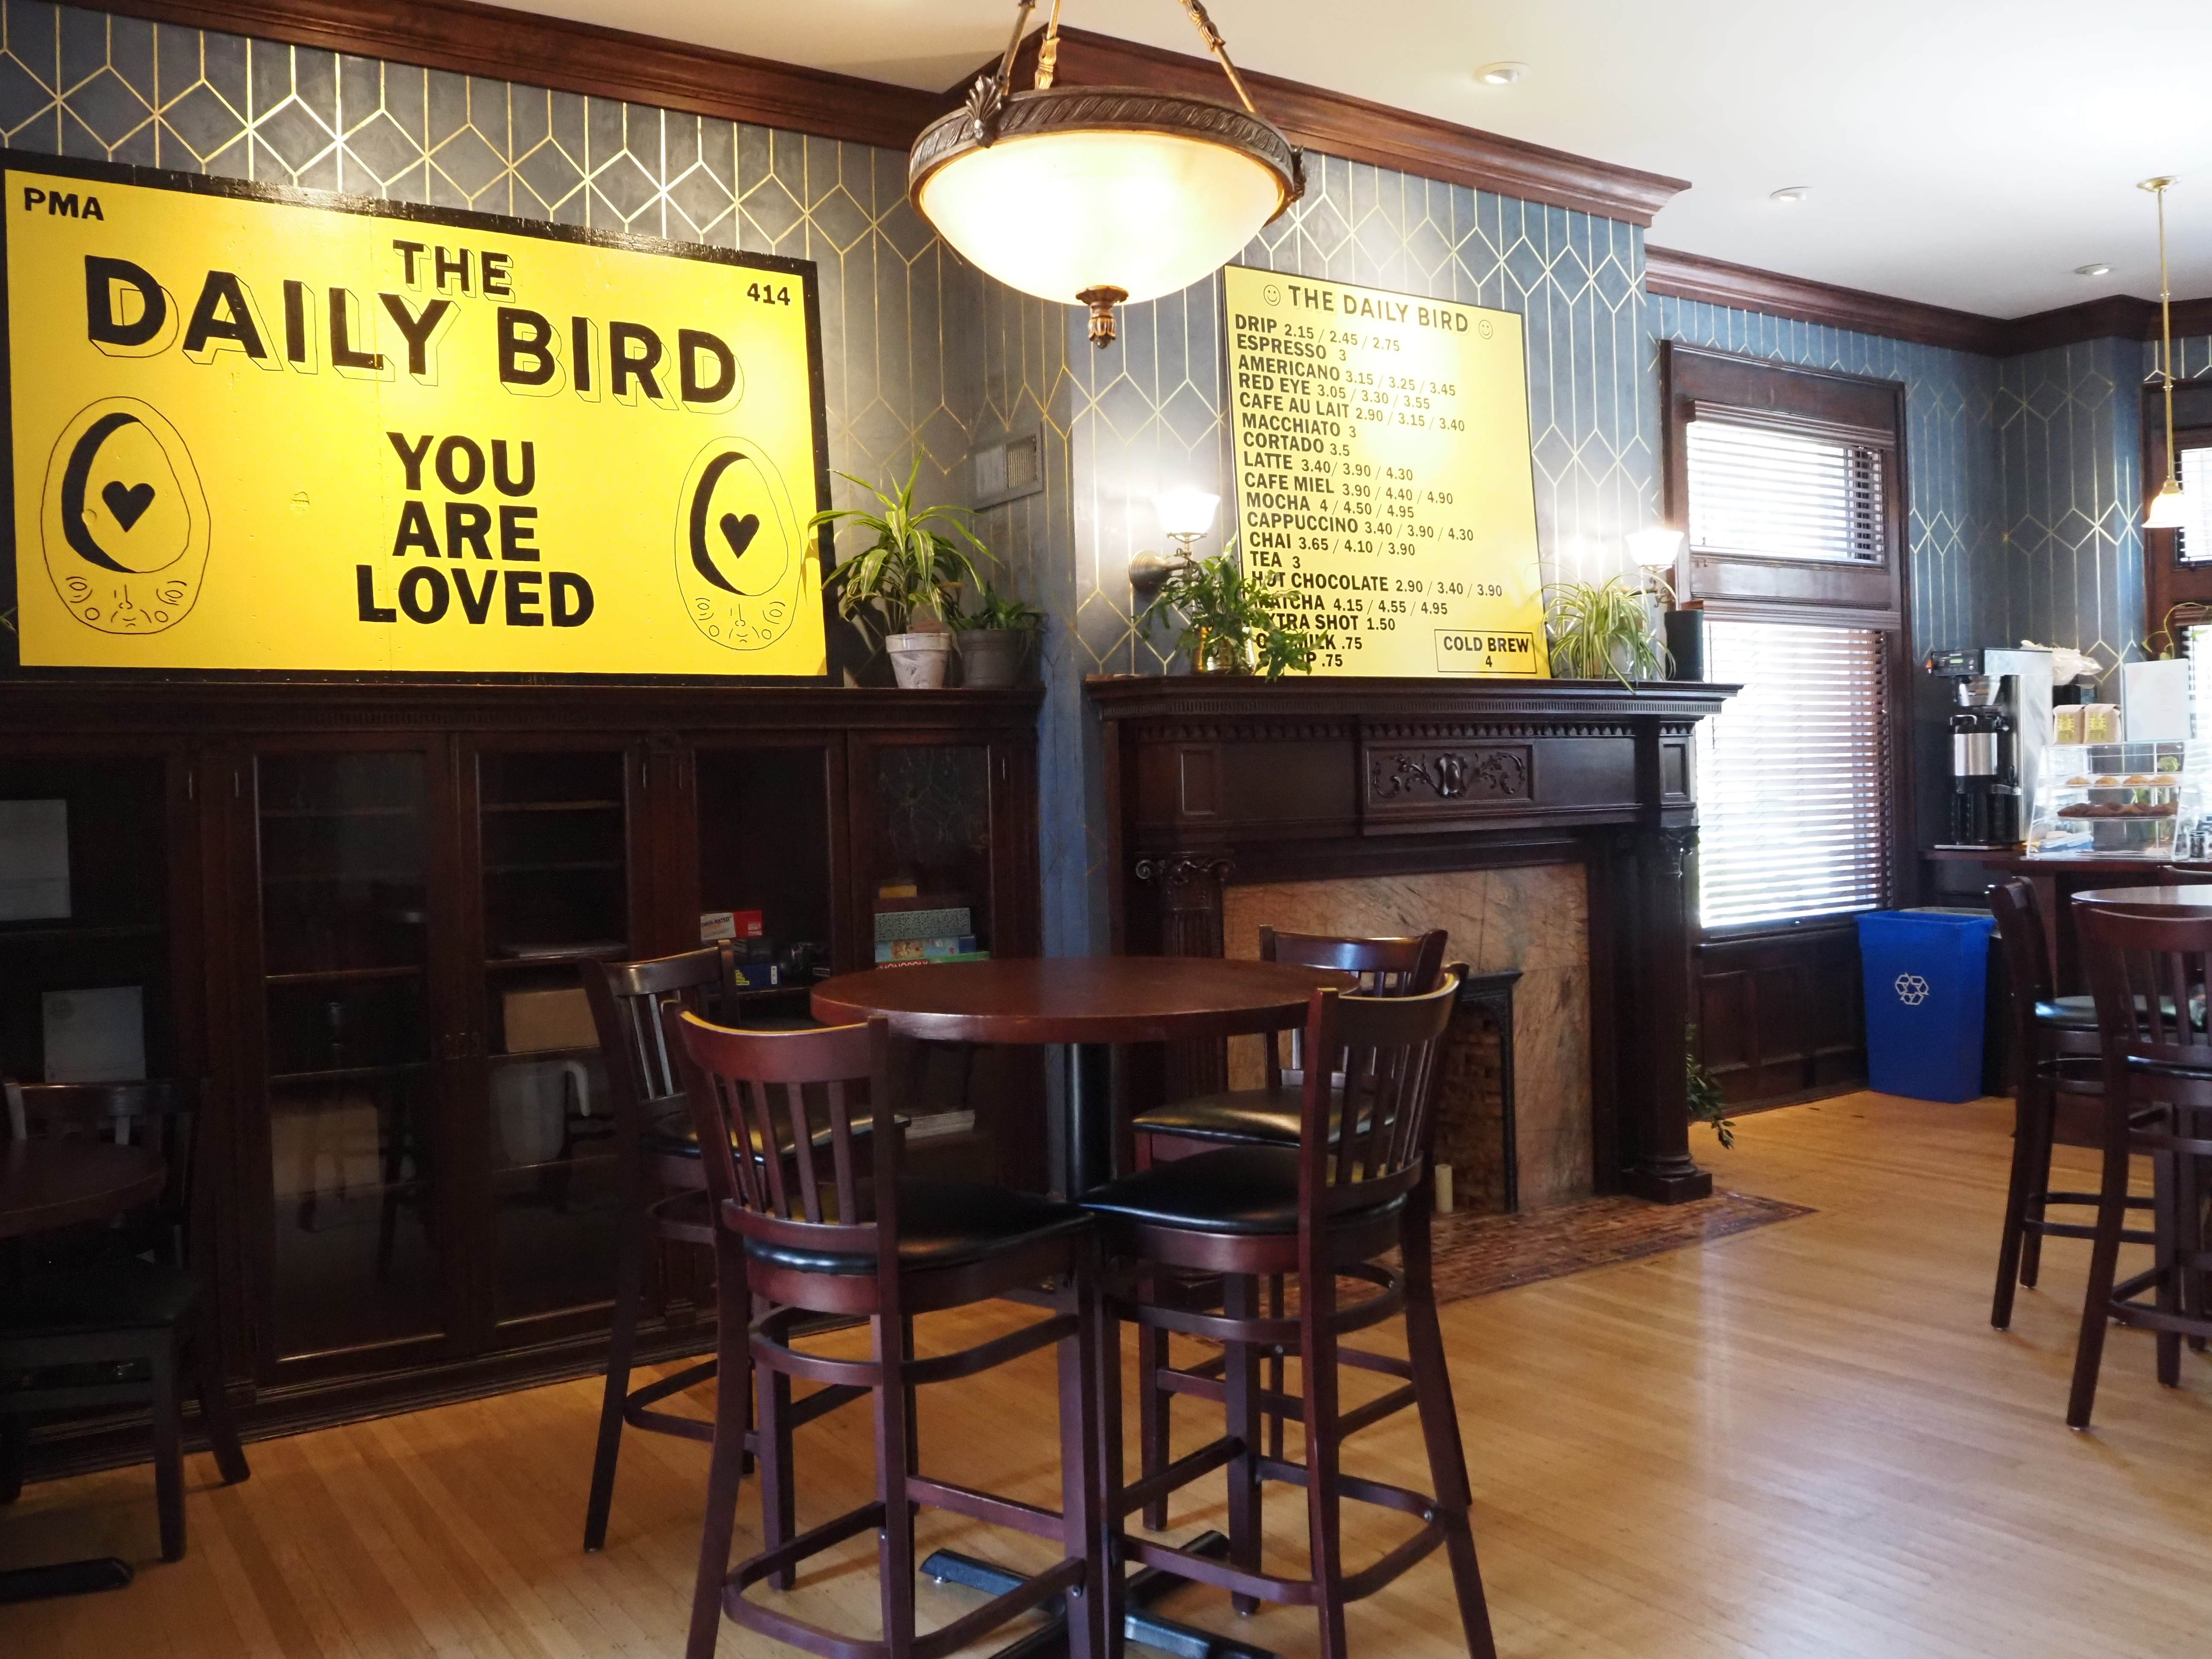 The Daily Bird at the Dubbel Dutch Hotel. This picture was taken by Hope Moses. All rights reserved.